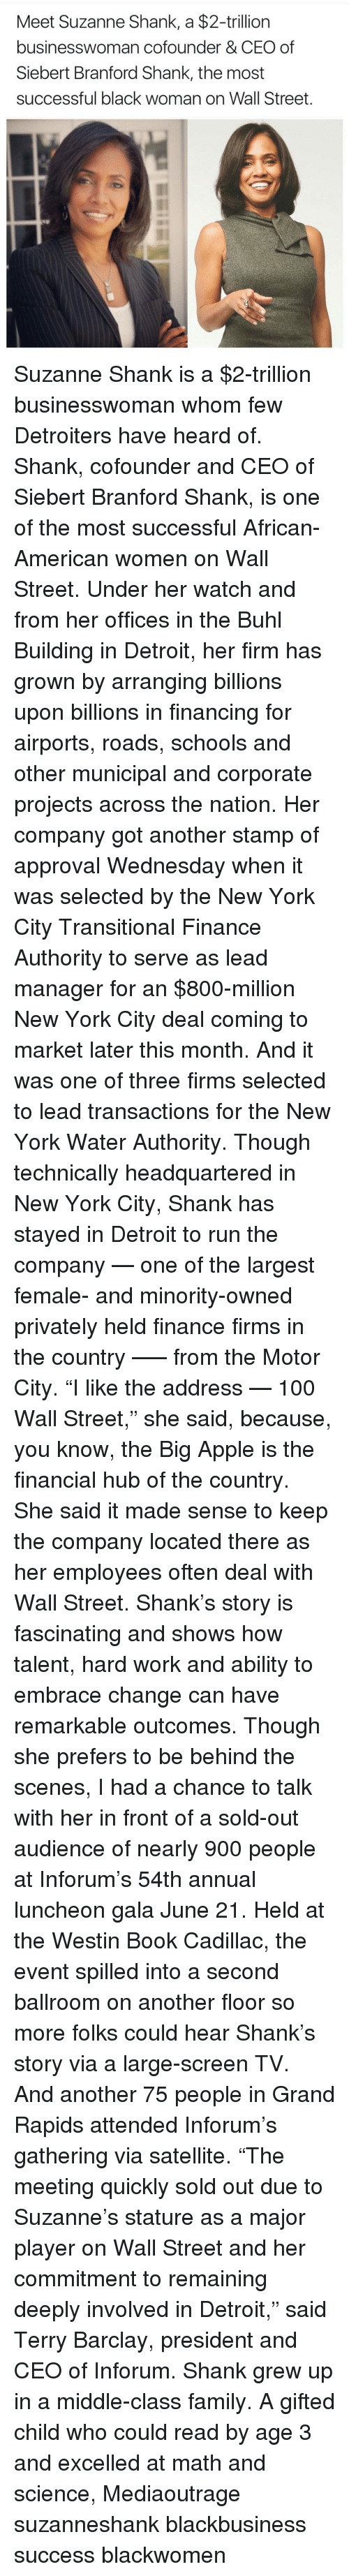 """shanks: Meet Suzanne Shank, a $2-trillion  businesswoman cofounder & CEO of  Siebert Branford Shank, the most  successful black woman on Wall Street. Suzanne Shank is a $2-trillion businesswoman whom few Detroiters have heard of. Shank, cofounder and CEO of Siebert Branford Shank, is one of the most successful African-American women on Wall Street. Under her watch and from her offices in the Buhl Building in Detroit, her firm has grown by arranging billions upon billions in financing for airports, roads, schools and other municipal and corporate projects across the nation. Her company got another stamp of approval Wednesday when it was selected by the New York City Transitional Finance Authority to serve as lead manager for an $800-million New York City deal coming to market later this month. And it was one of three firms selected to lead transactions for the New York Water Authority. Though technically headquartered in New York City, Shank has stayed in Detroit to run the company — one of the largest female- and minority-owned privately held finance firms in the country —– from the Motor City. """"I like the address — 100 Wall Street,"""" she said, because, you know, the Big Apple is the financial hub of the country. She said it made sense to keep the company located there as her employees often deal with Wall Street. Shank's story is fascinating and shows how talent, hard work and ability to embrace change can have remarkable outcomes. Though she prefers to be behind the scenes, I had a chance to talk with her in front of a sold-out audience of nearly 900 people at Inforum's 54th annual luncheon gala June 21. Held at the Westin Book Cadillac, the event spilled into a second ballroom on another floor so more folks could hear Shank's story via a large-screen TV. And another 75 people in Grand Rapids attended Inforum's gathering via satellite. """"The meeting quickly sold out due to Suzanne's stature as a major player on Wall Street and her commitment to remaining deeply invo"""